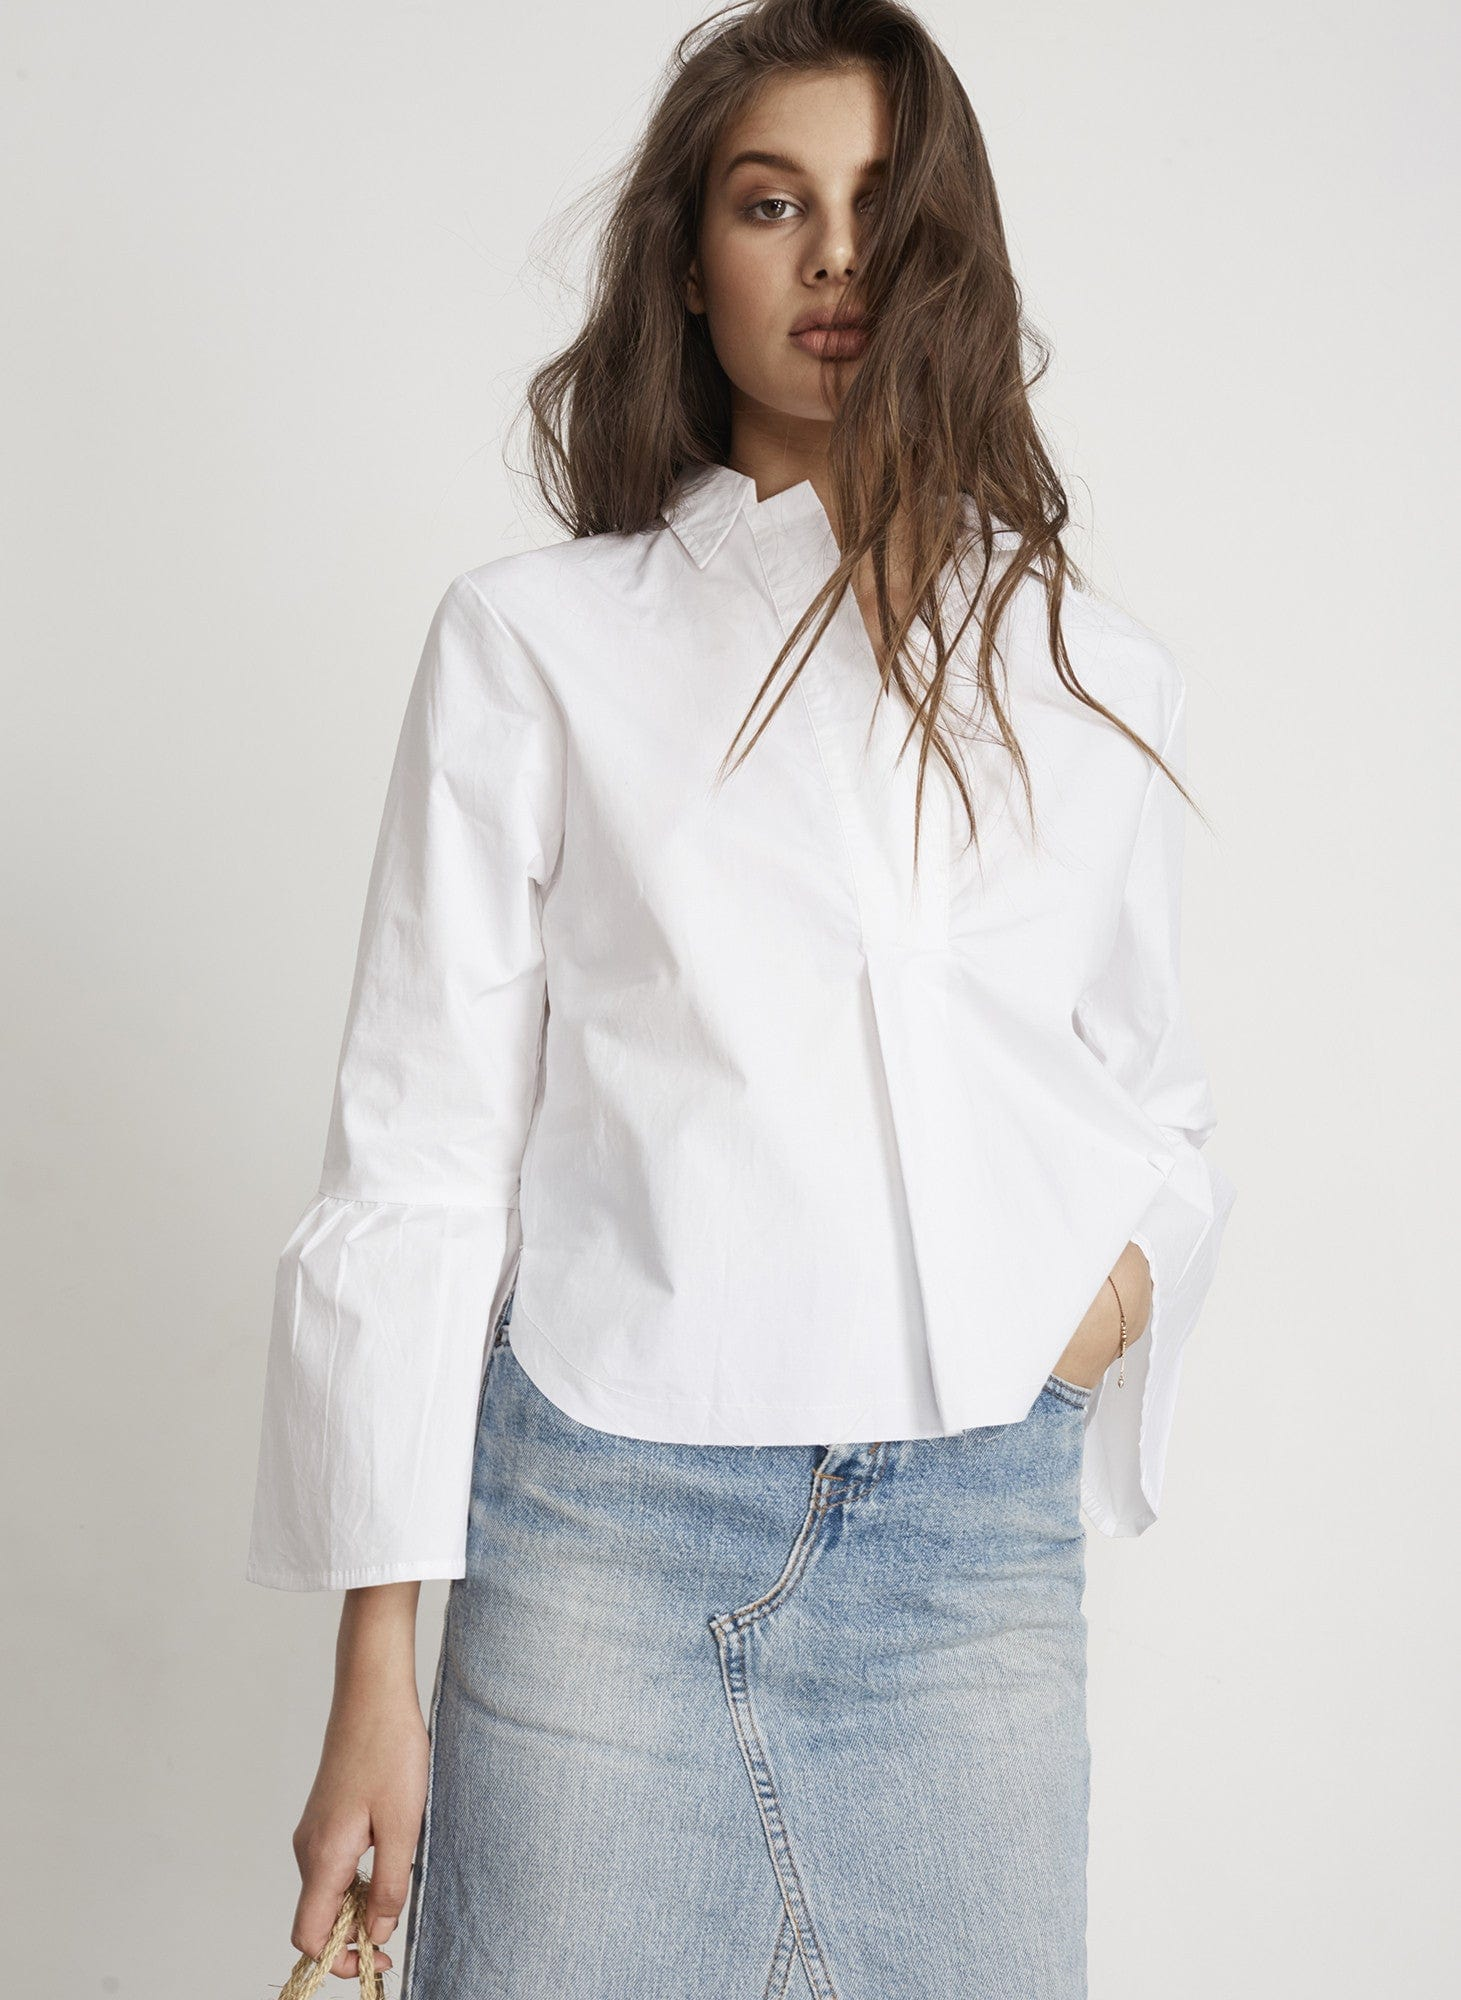 PLAIN WHITE - BISOUS SHIRT - FINAL SALE